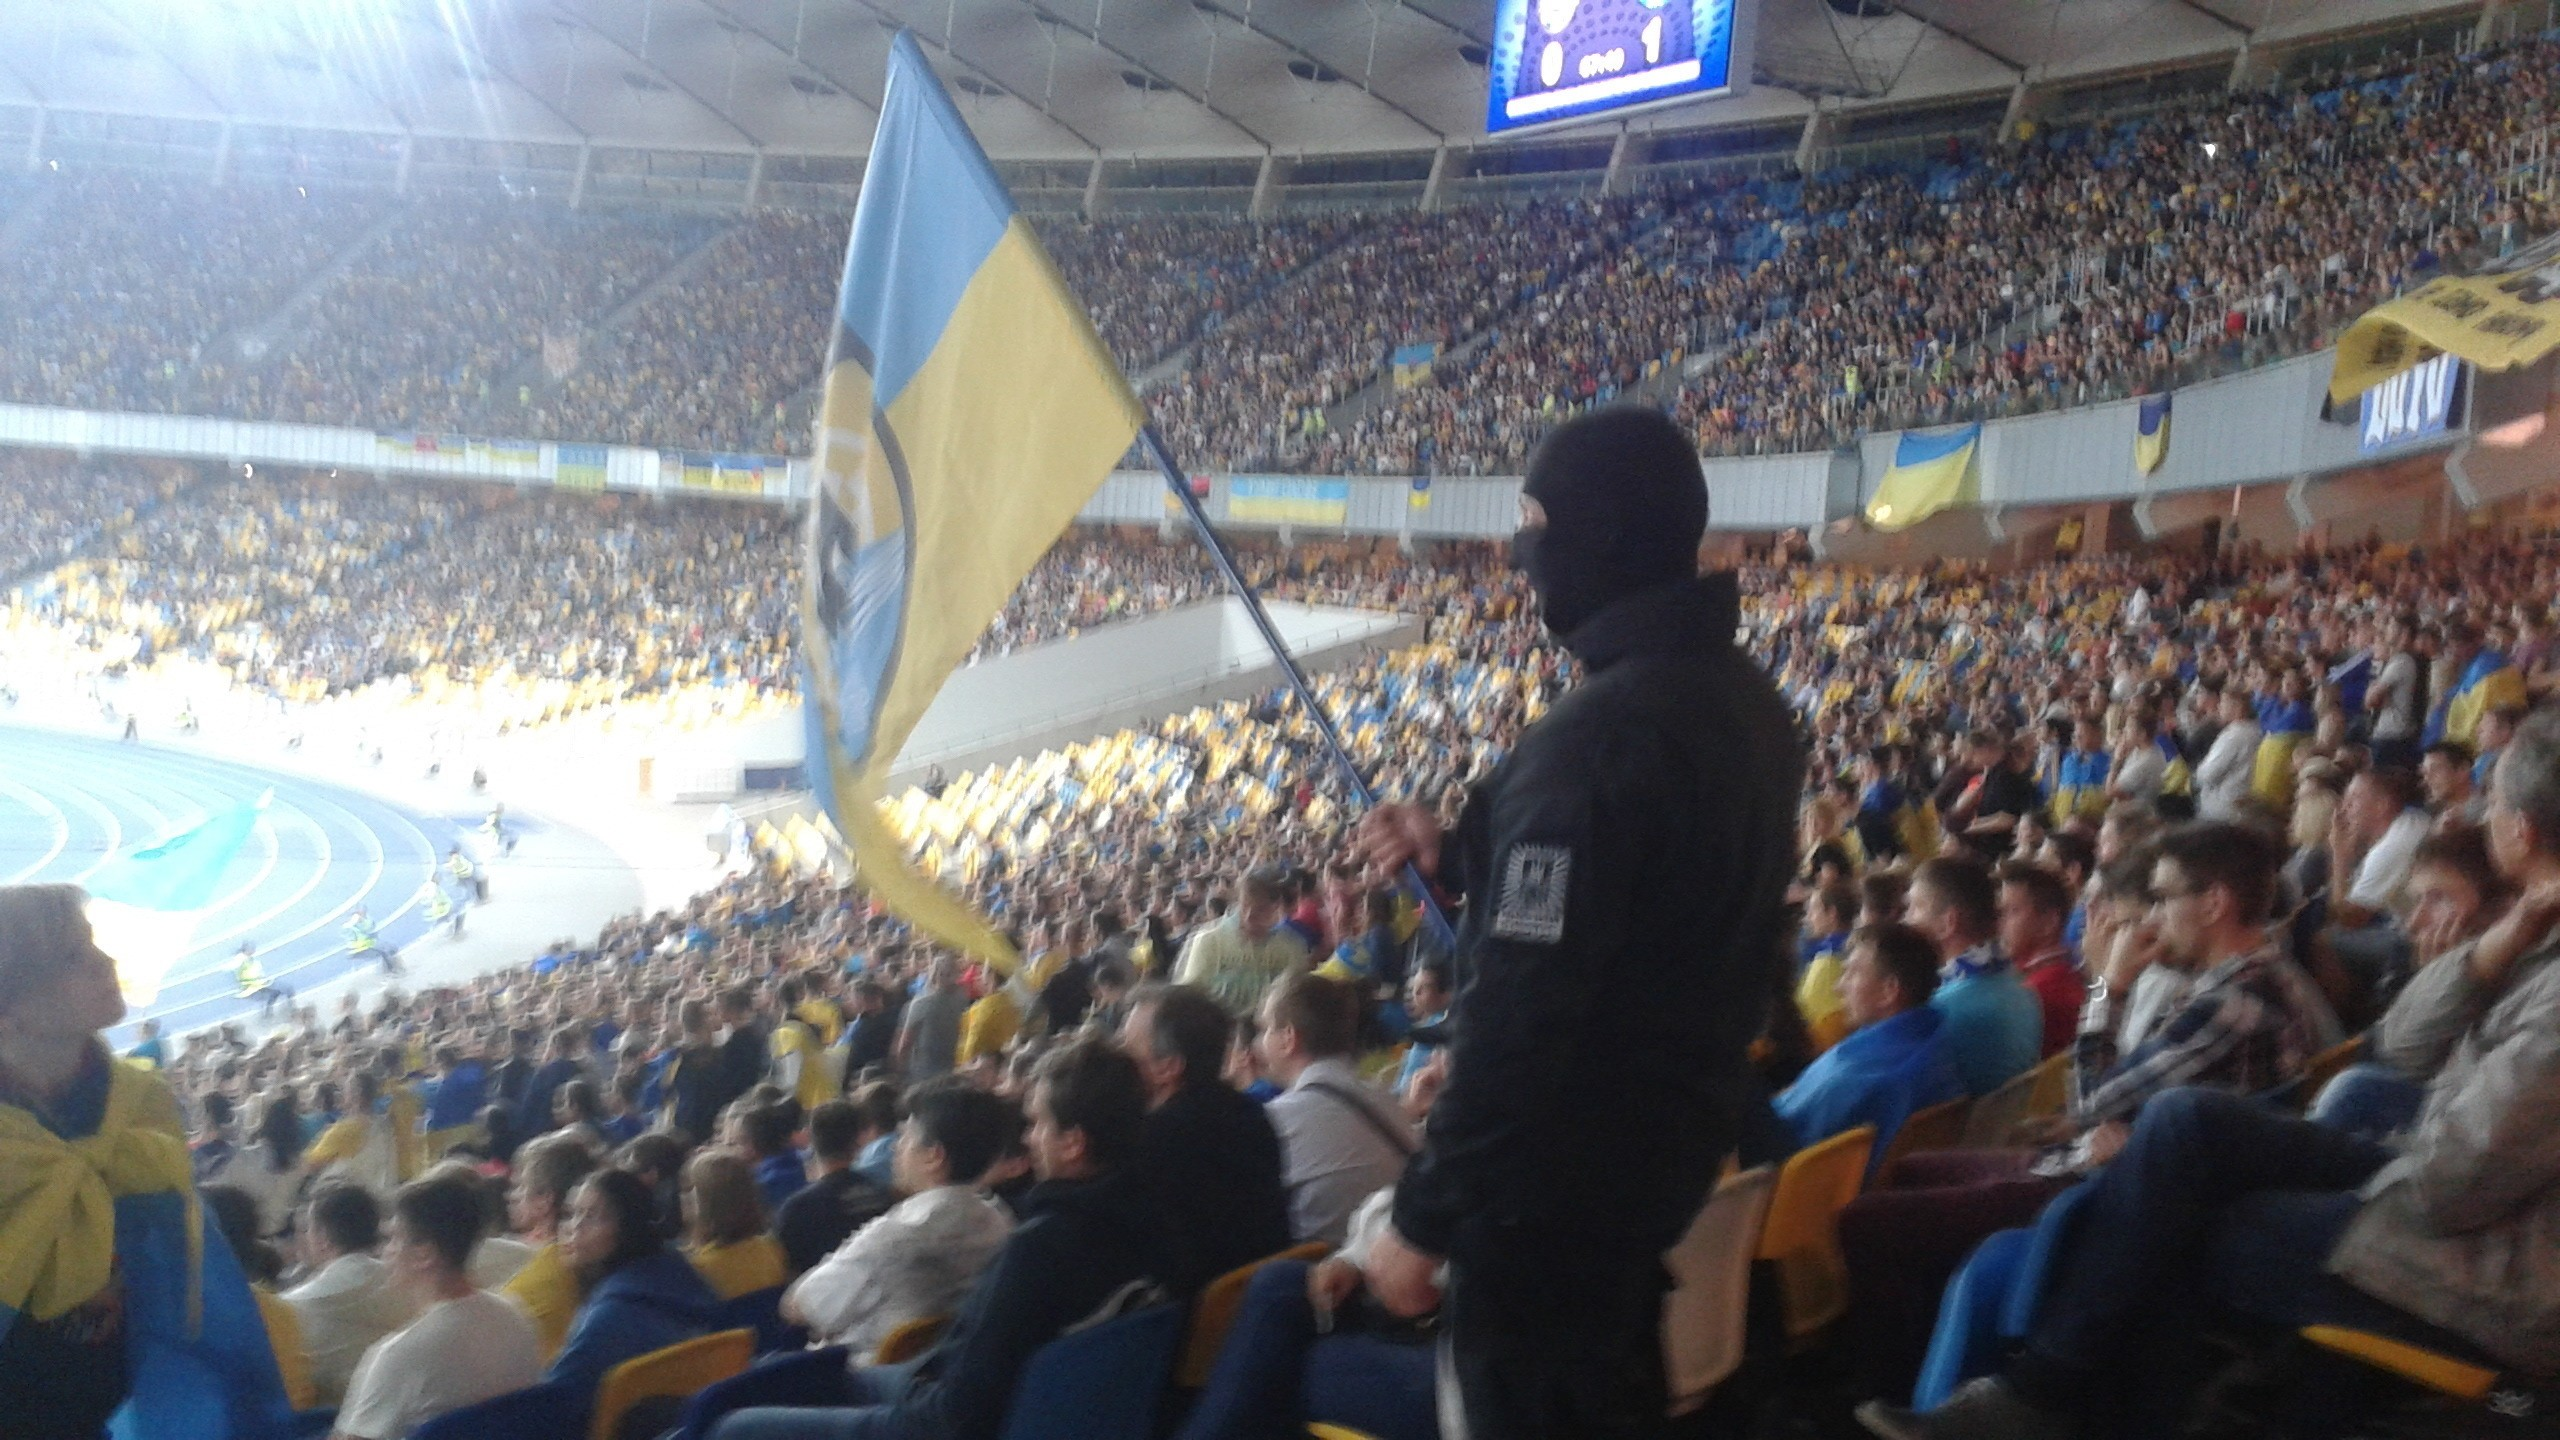 The Ultras, Azov Battalion, and Soccer From Inside Ukraine